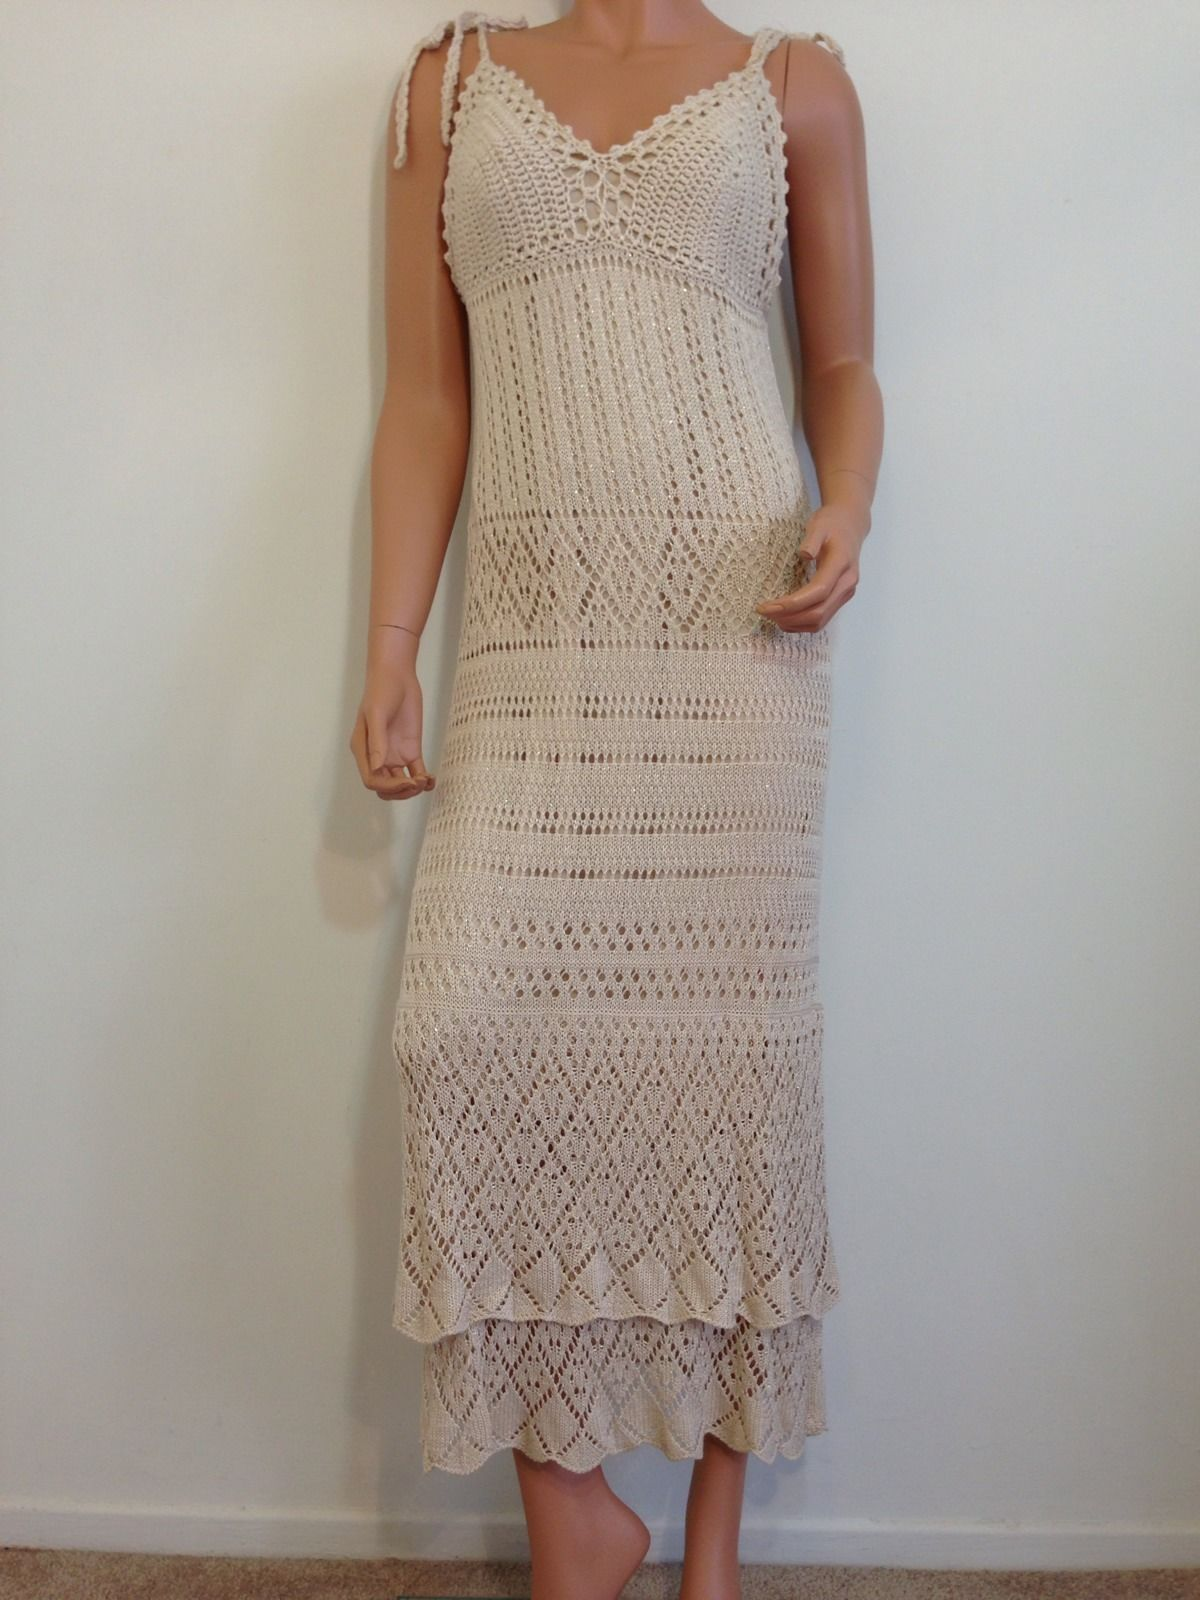 Crochet Maxi Dress : Beige Crochet Maxi Hippie Bohemian Dress SMALL - Dresses